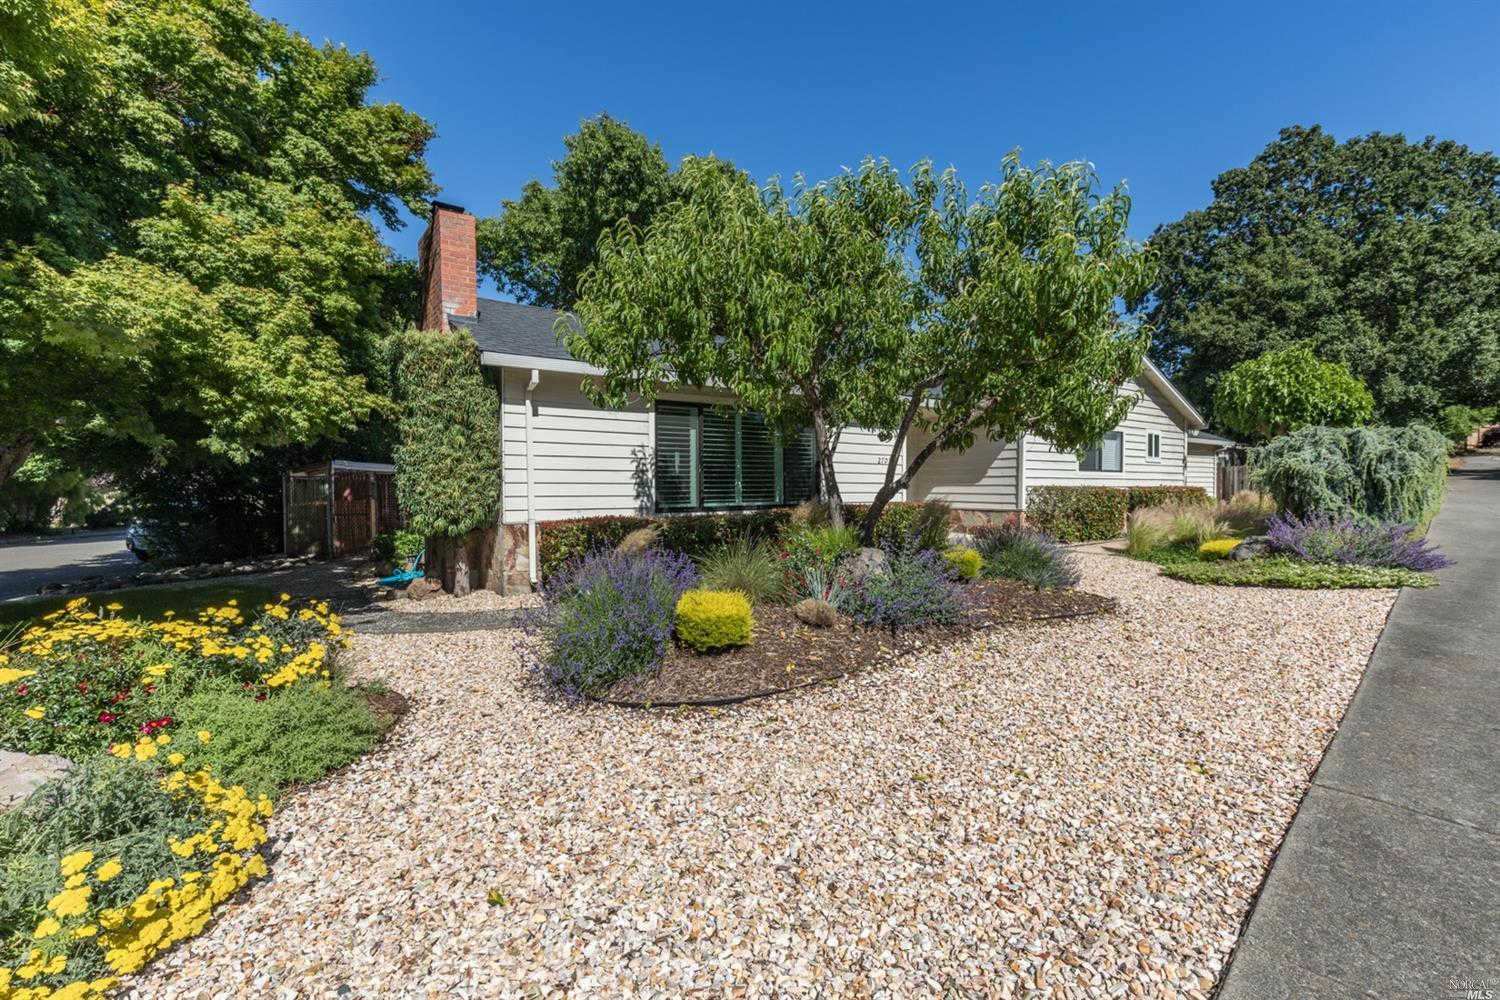 2701 Redwood Road, Napa, CA 94558 has an Open House on  Sunday, June 23, 2019 3:00 PM to 5:00 PM